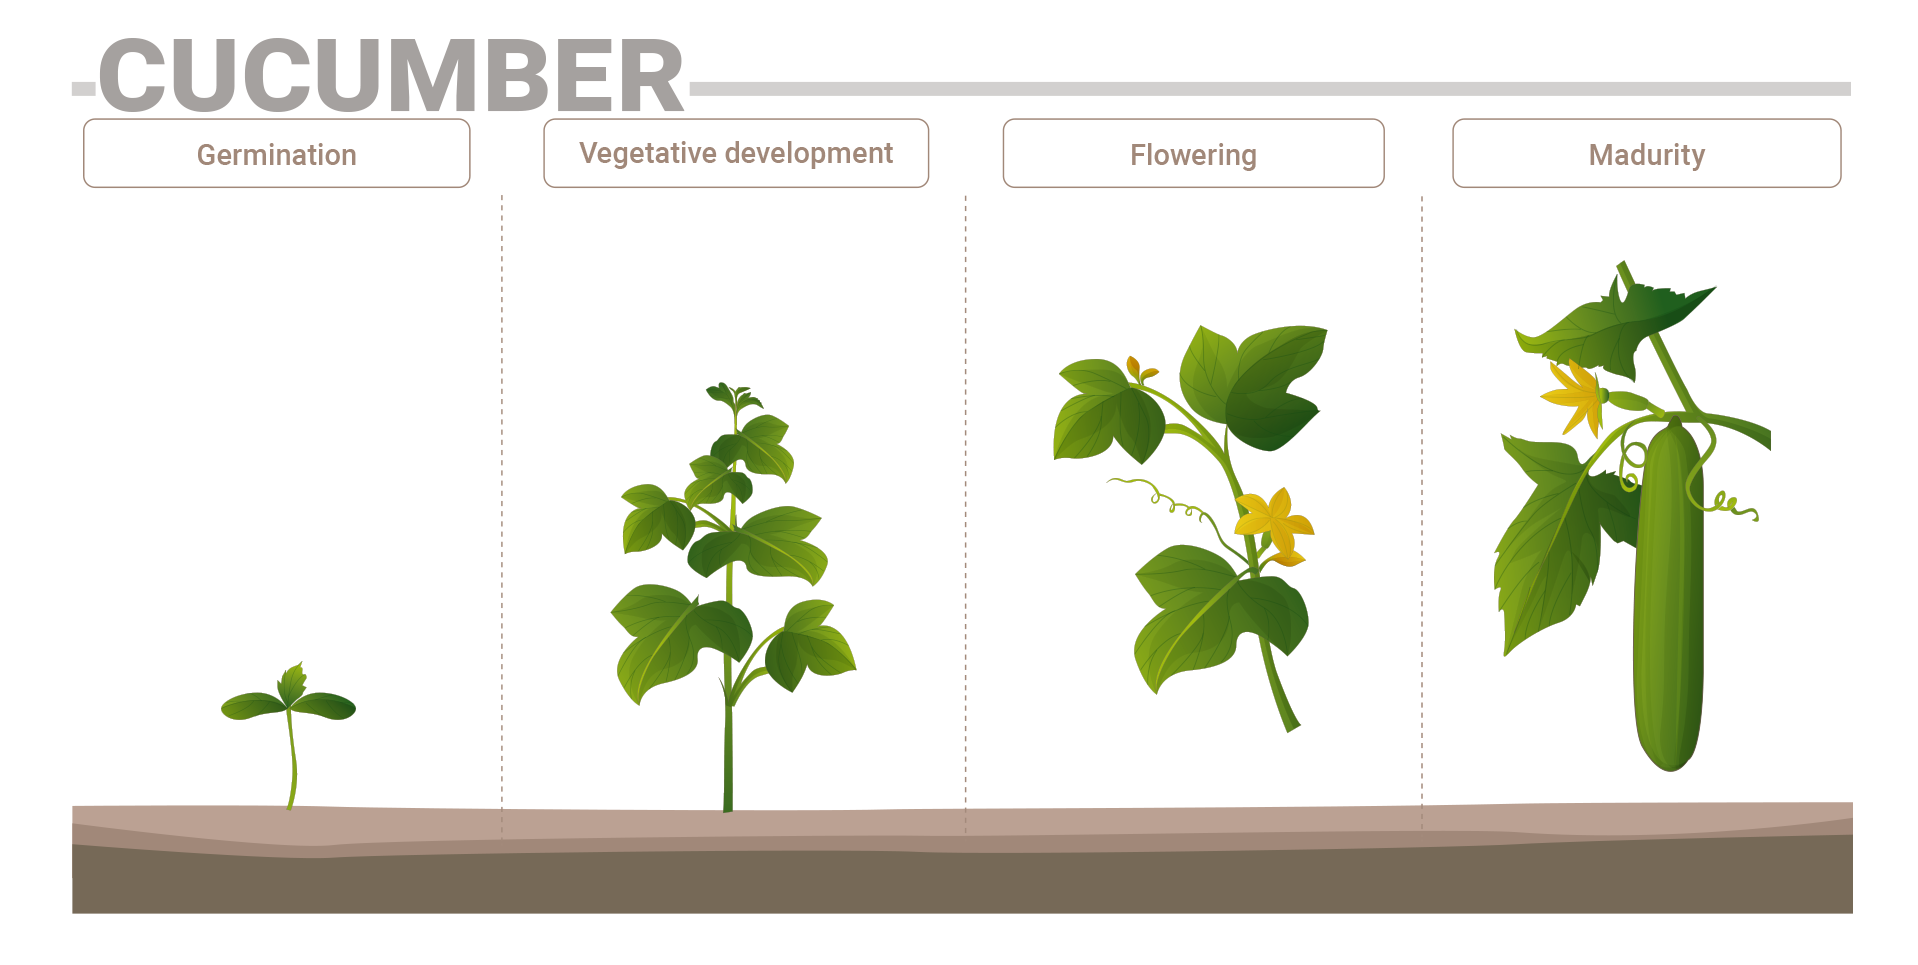 Recommendations for mineral nutrition by micro-irrigation and fertigation, of protected (tunnel/greenhouse) soilless- grown cucumbers, at yield level of 200-250 MT/ha